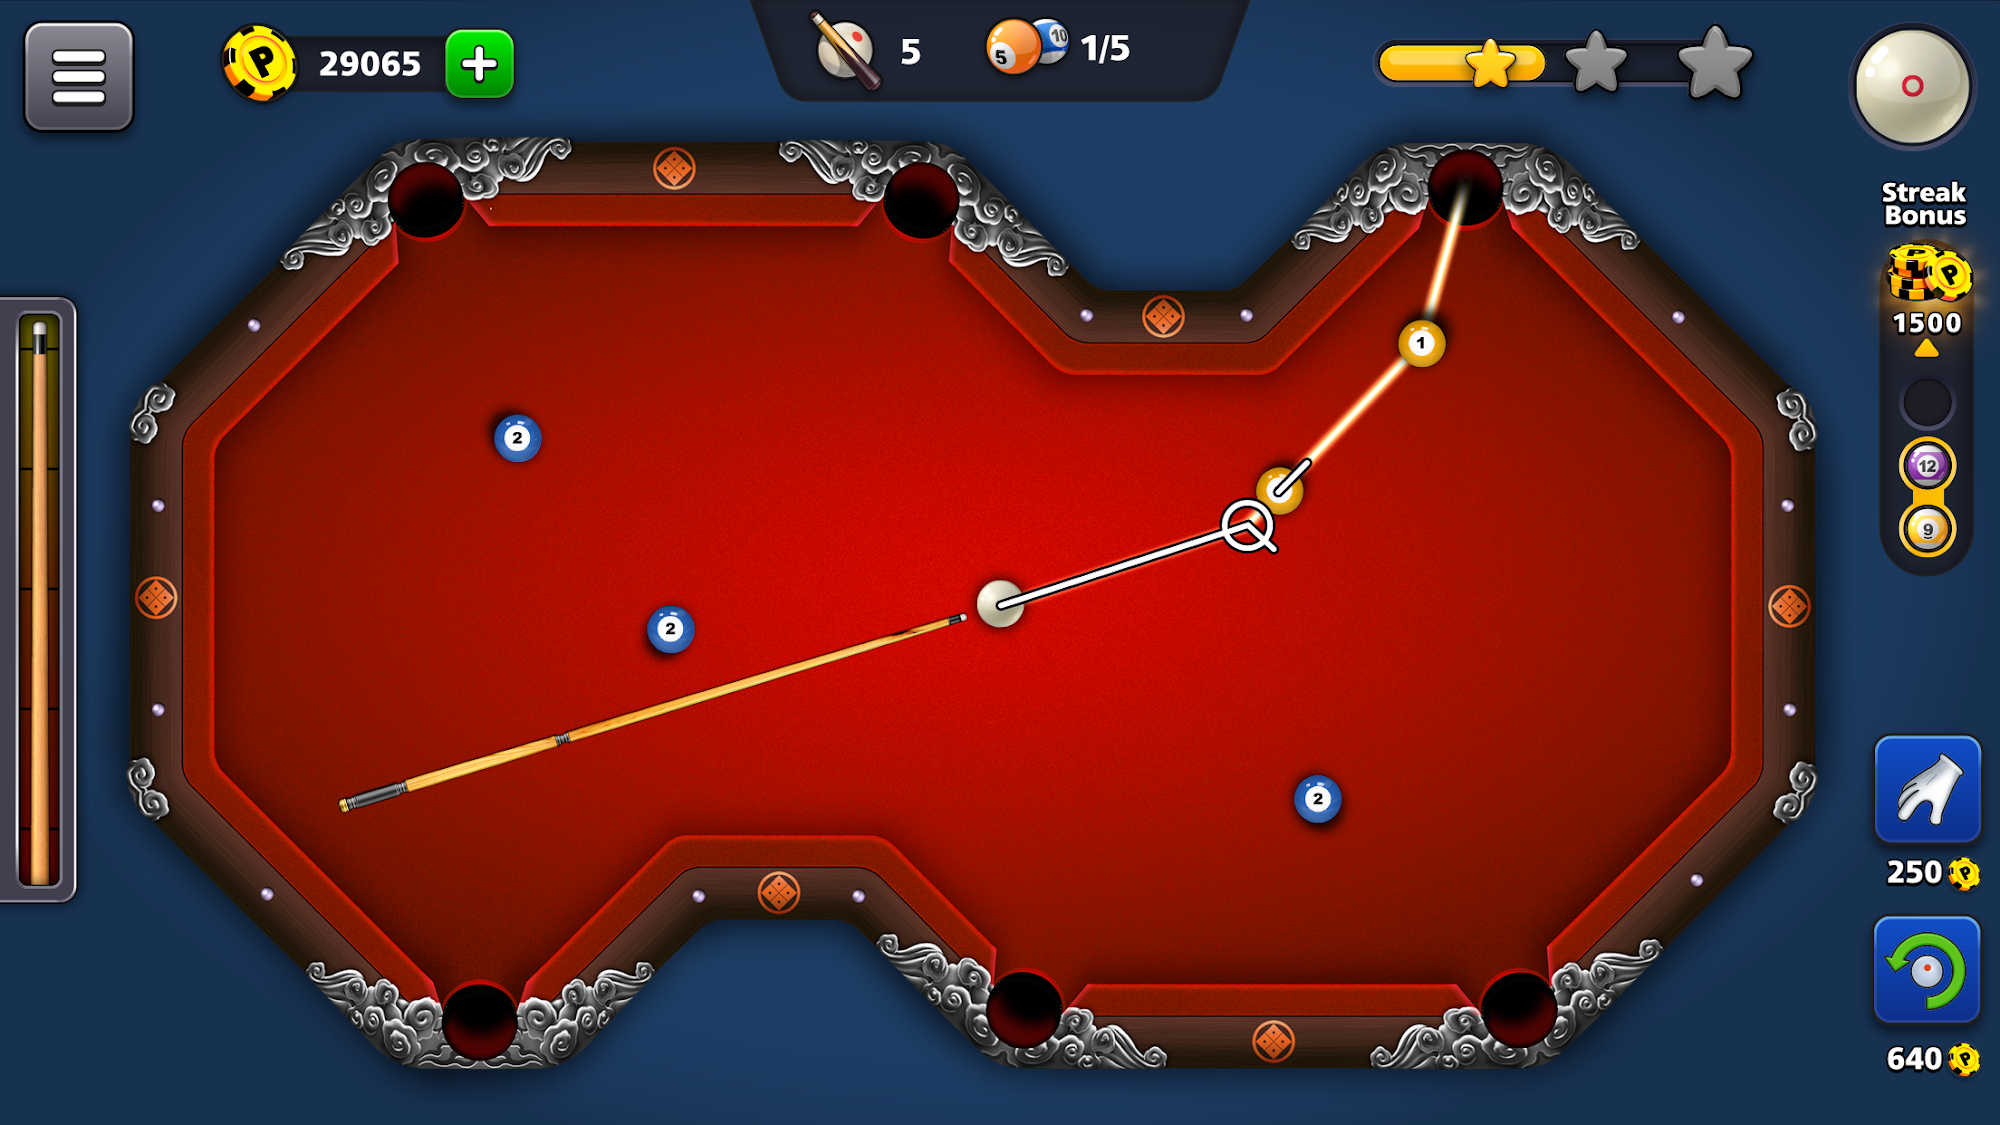 8 Ball Pool Trickshots скриншот 3